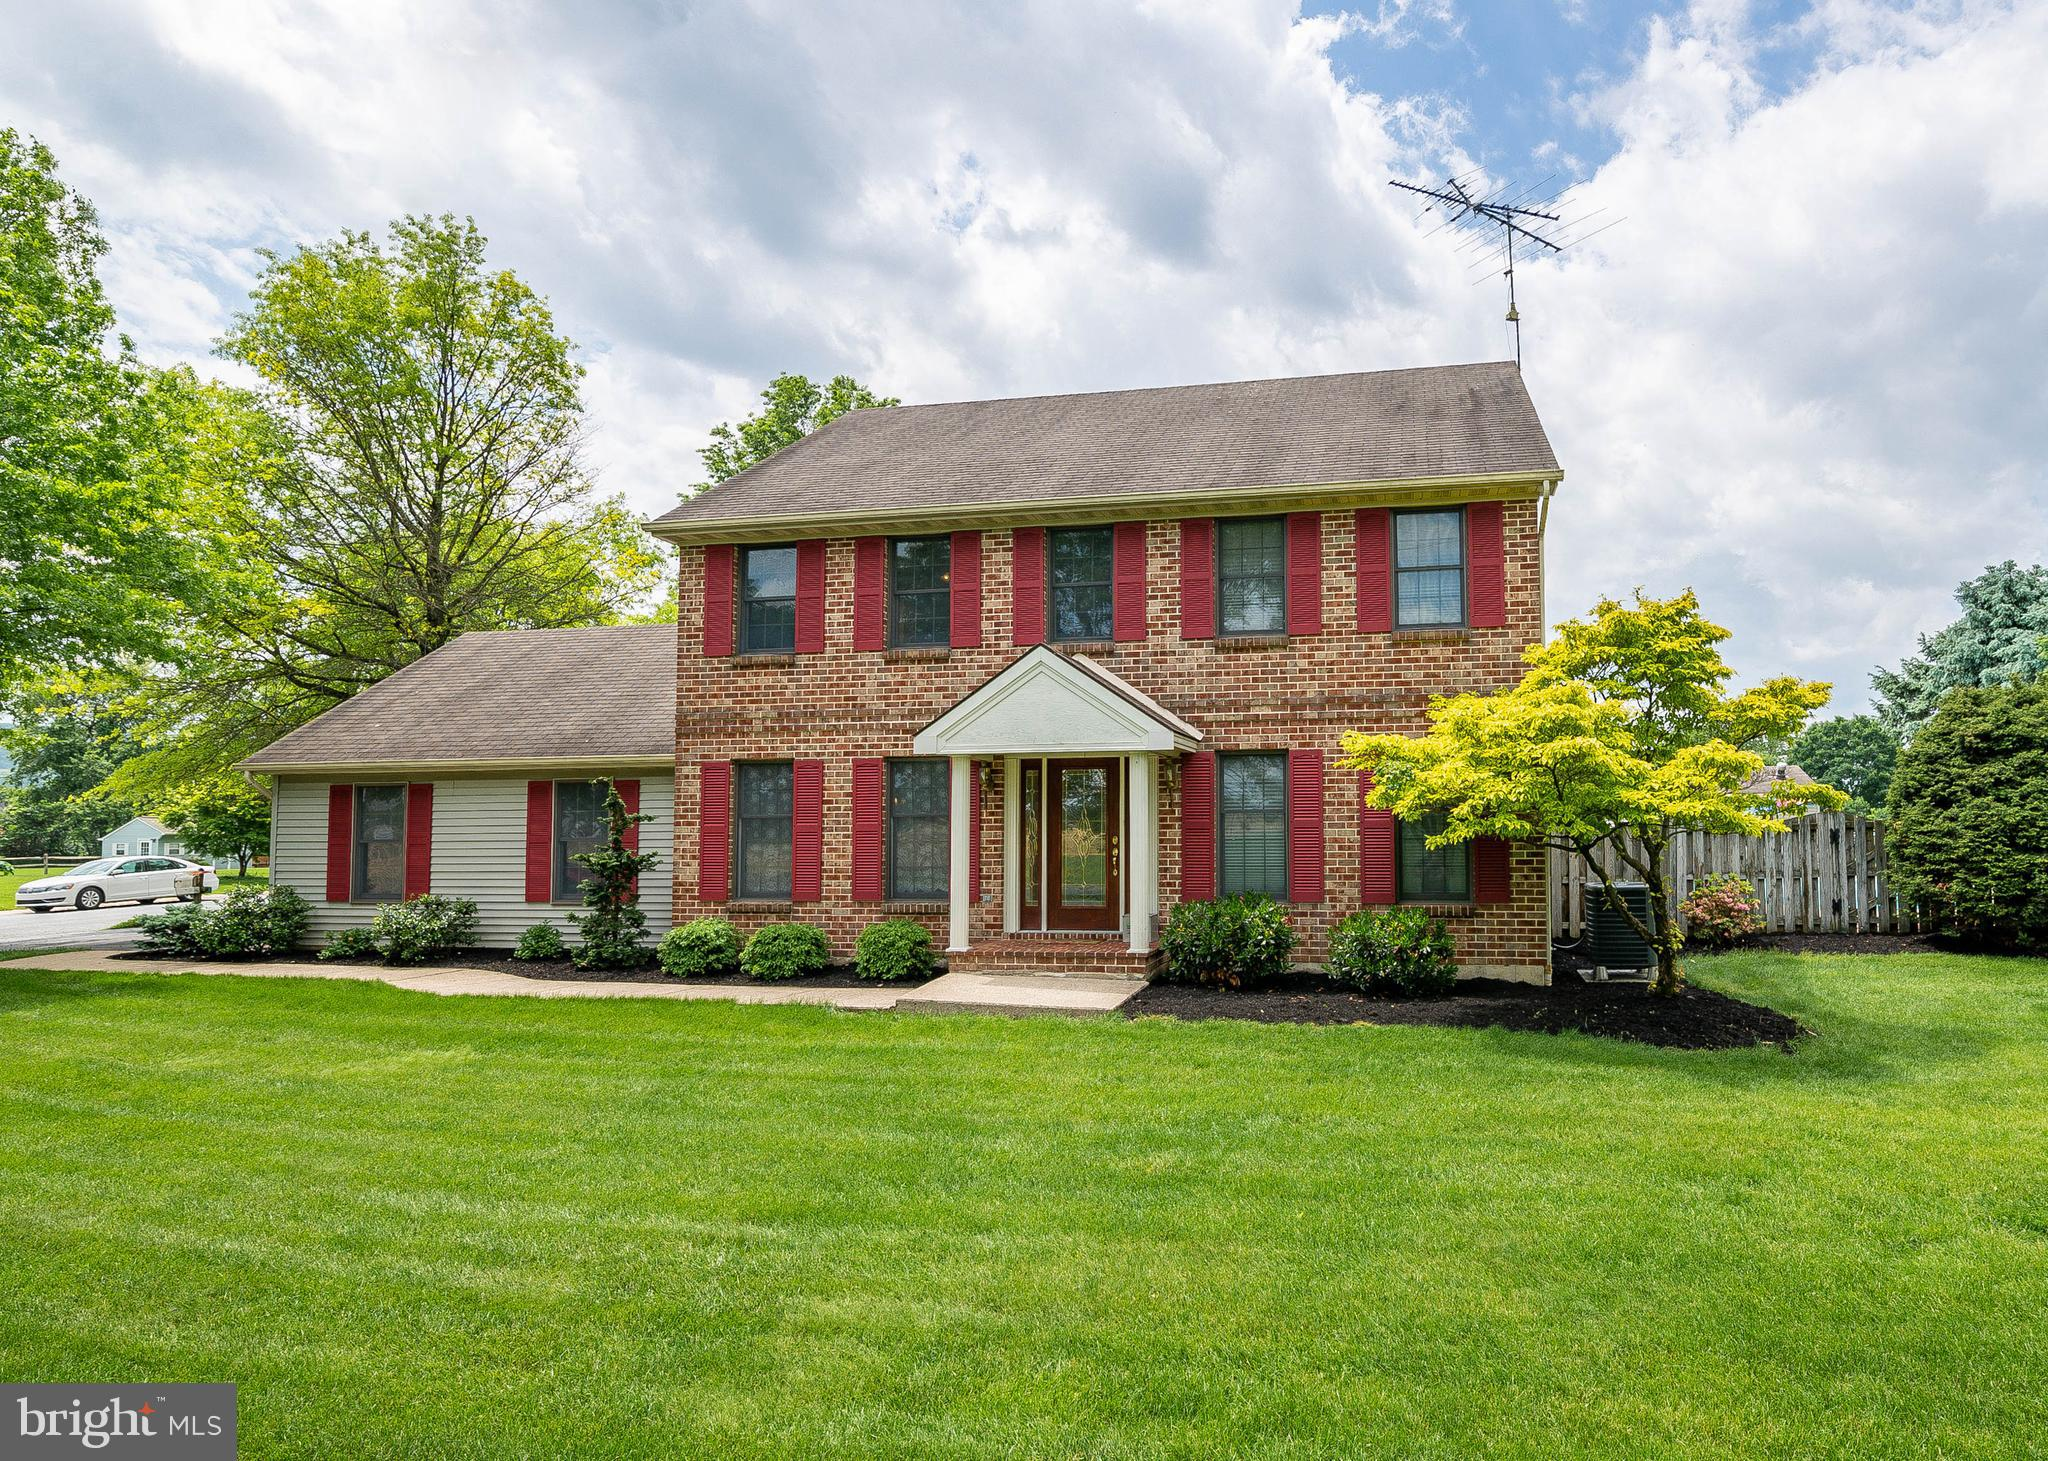 169 ORCHARD ROAD, READING, PA 19605